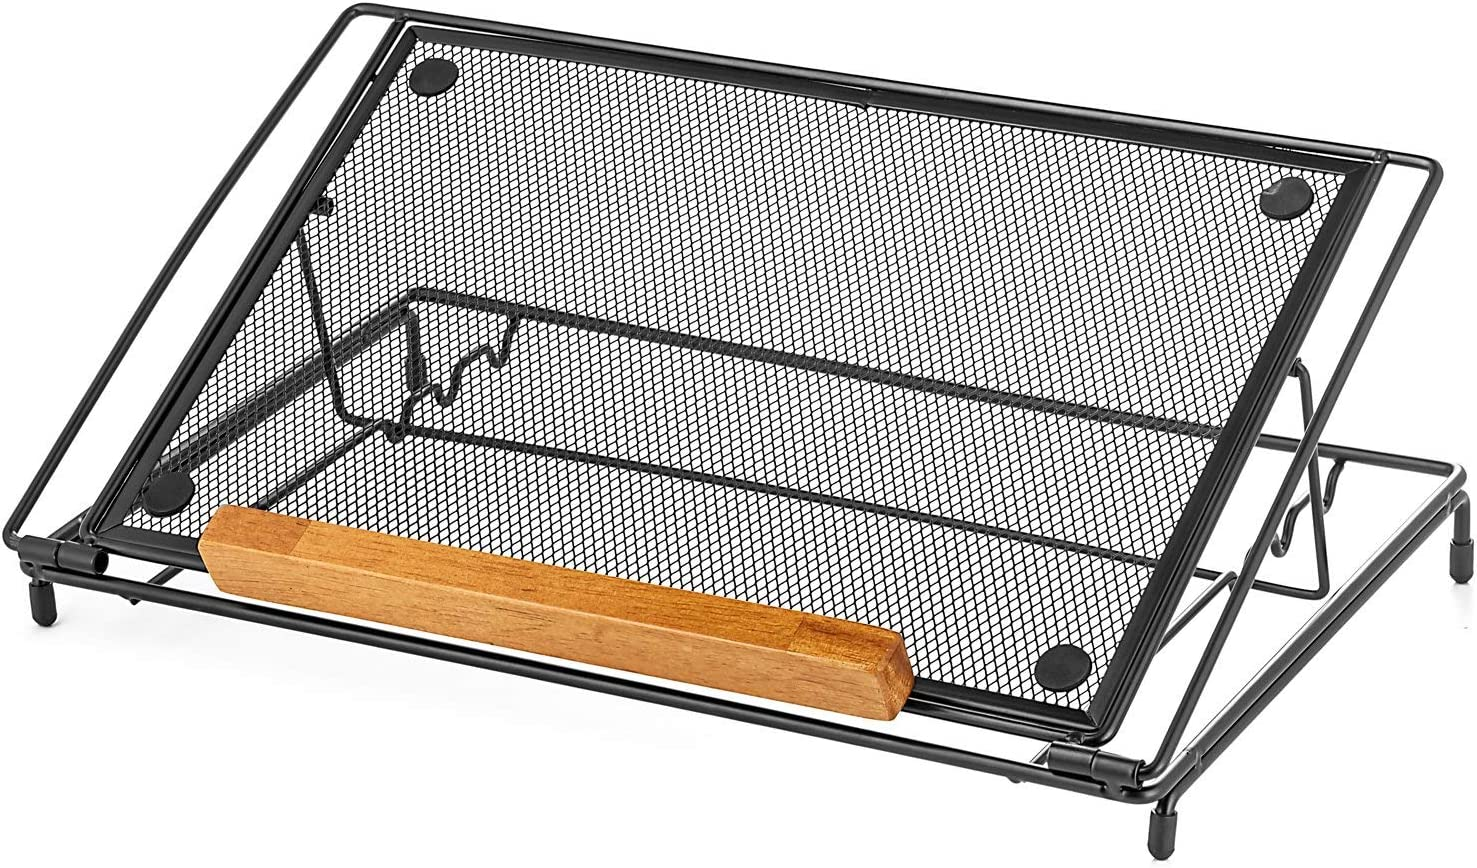 Halter Mesh Ventilated Adjustable Laptop Stand for Laptop/Notebook/iPad/Tablet and More - 9